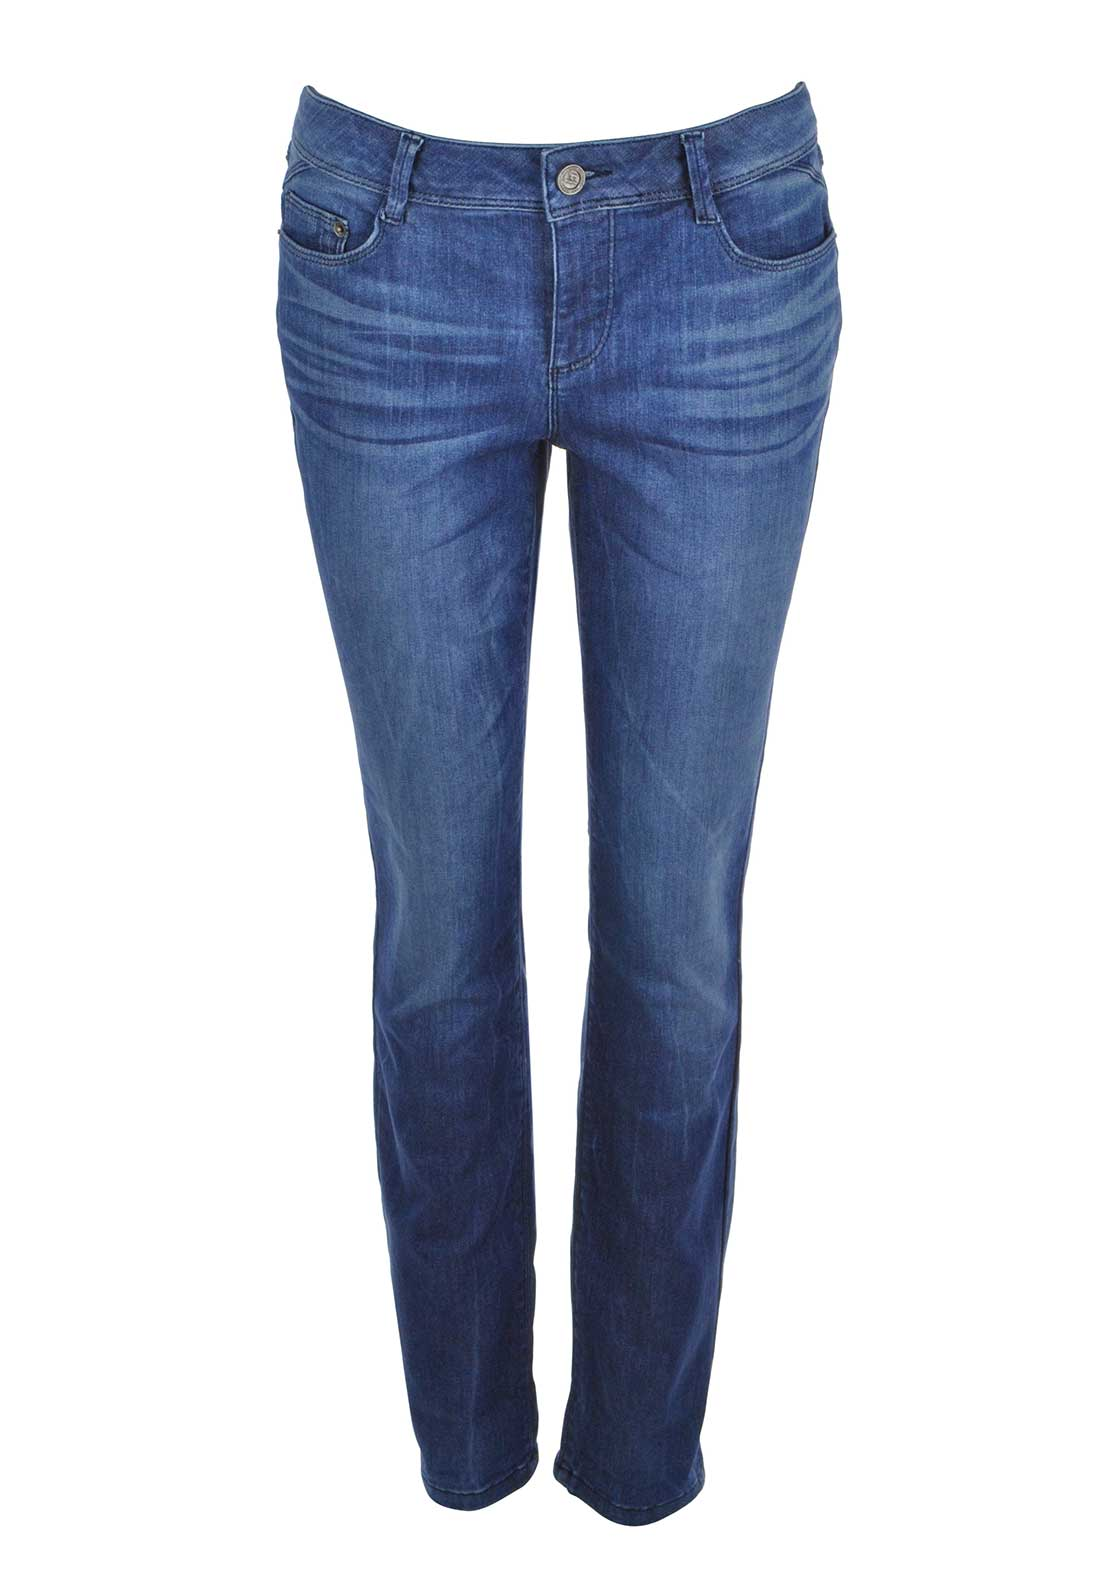 Street One Jane Washed Slim Leg Jeans, Mid Blue